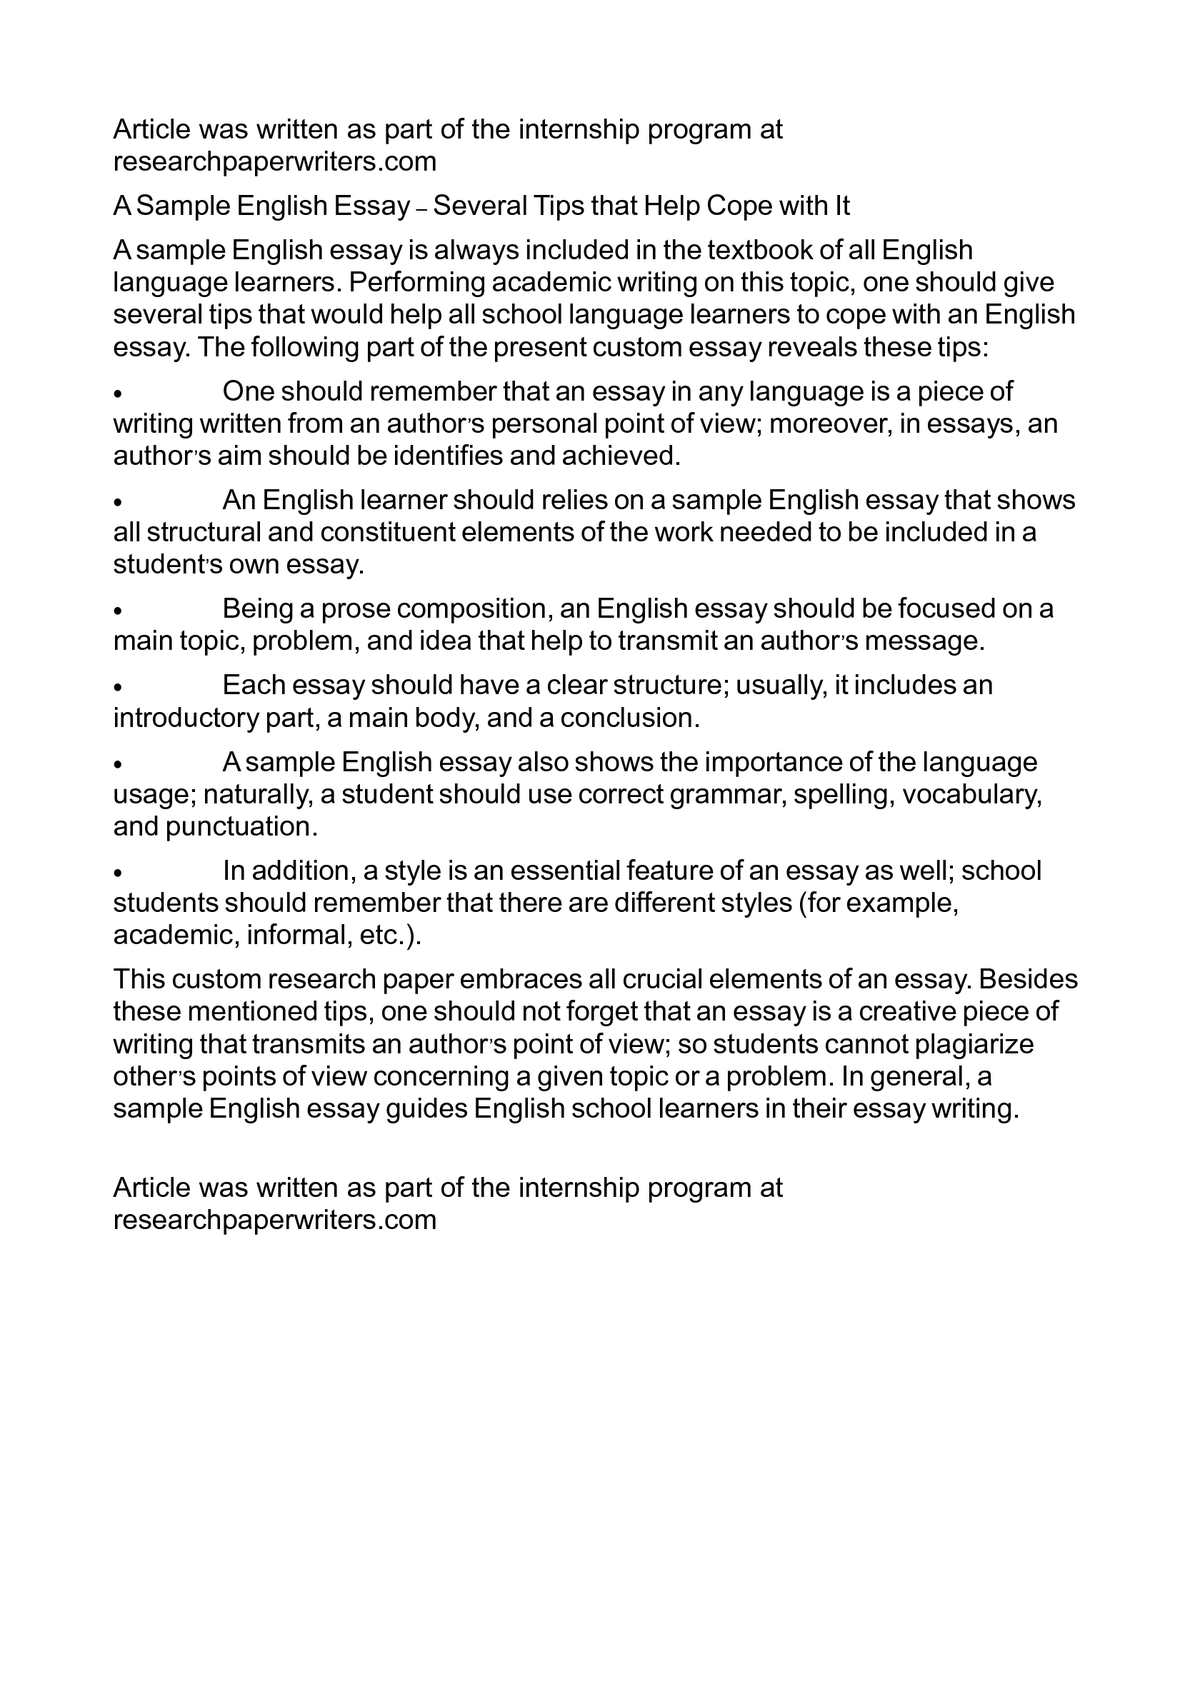 Essay Topics For Research Paper  Examples Of A Thesis Statement In An Essay also Essay Writing On Newspaper Calamo  A Sample English Essay  Several Tips That Help  Health Essay